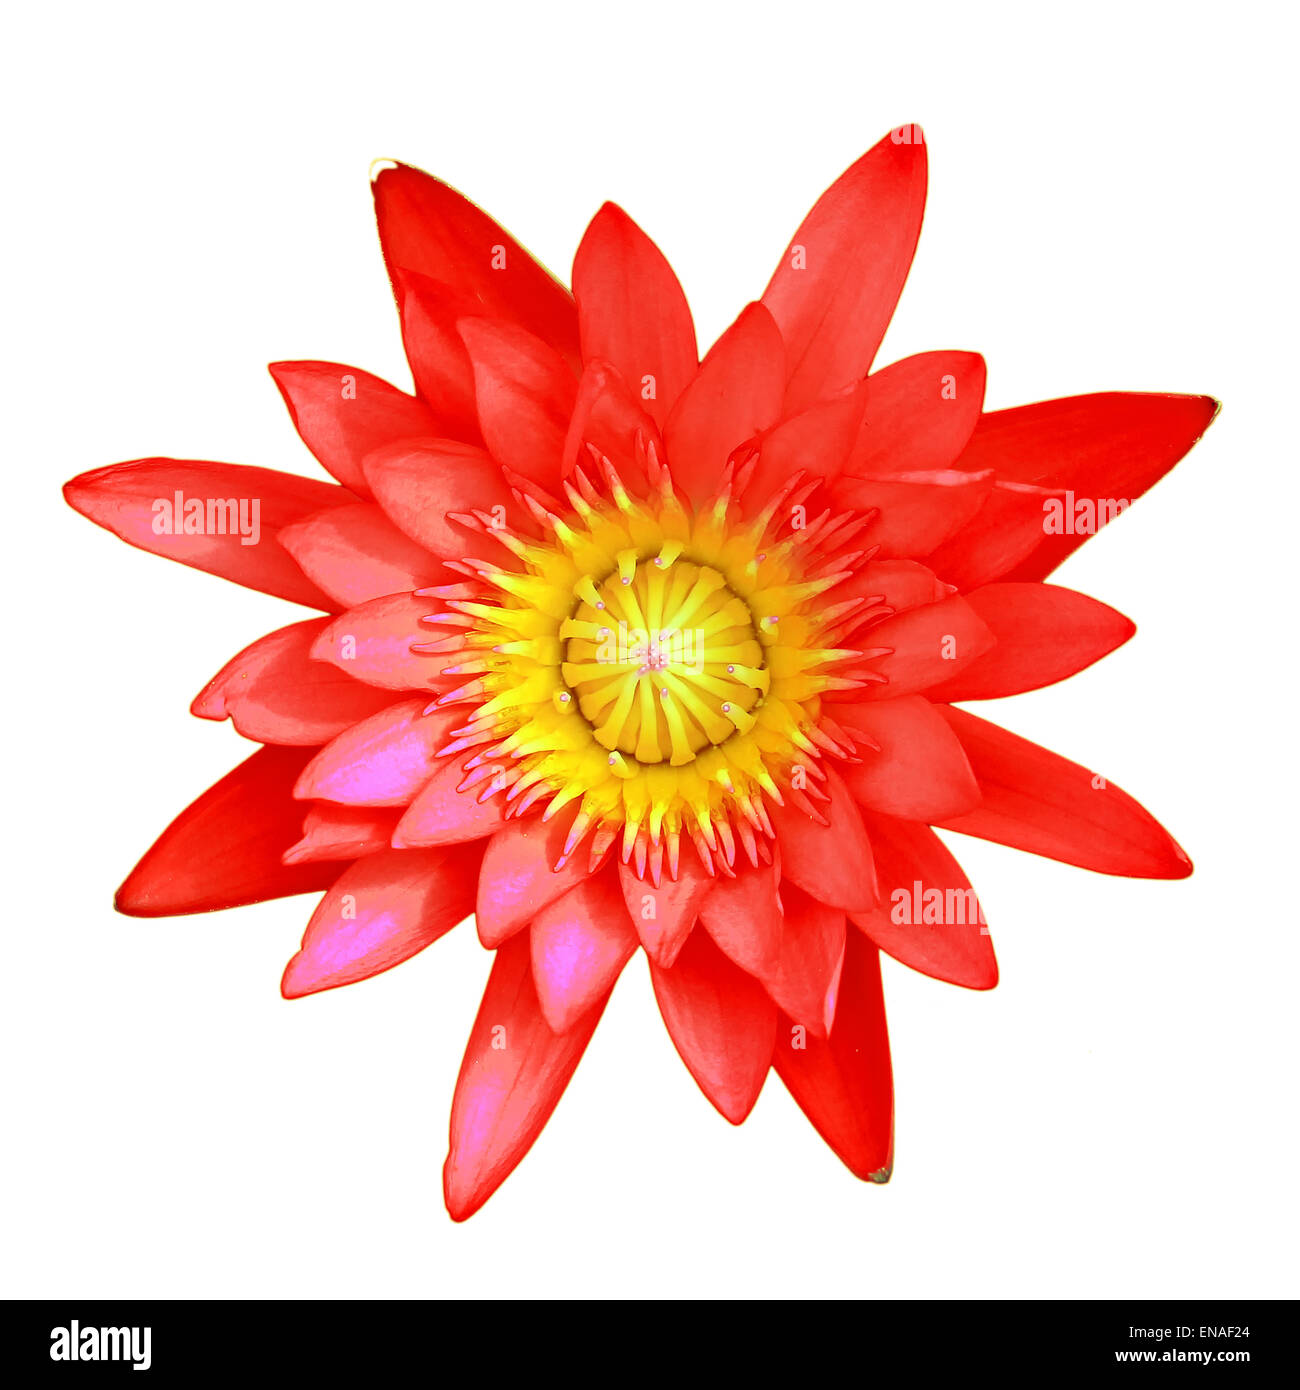 Red lotus flower isolated on white background stock photo 81980588 red lotus flower isolated on white background mightylinksfo